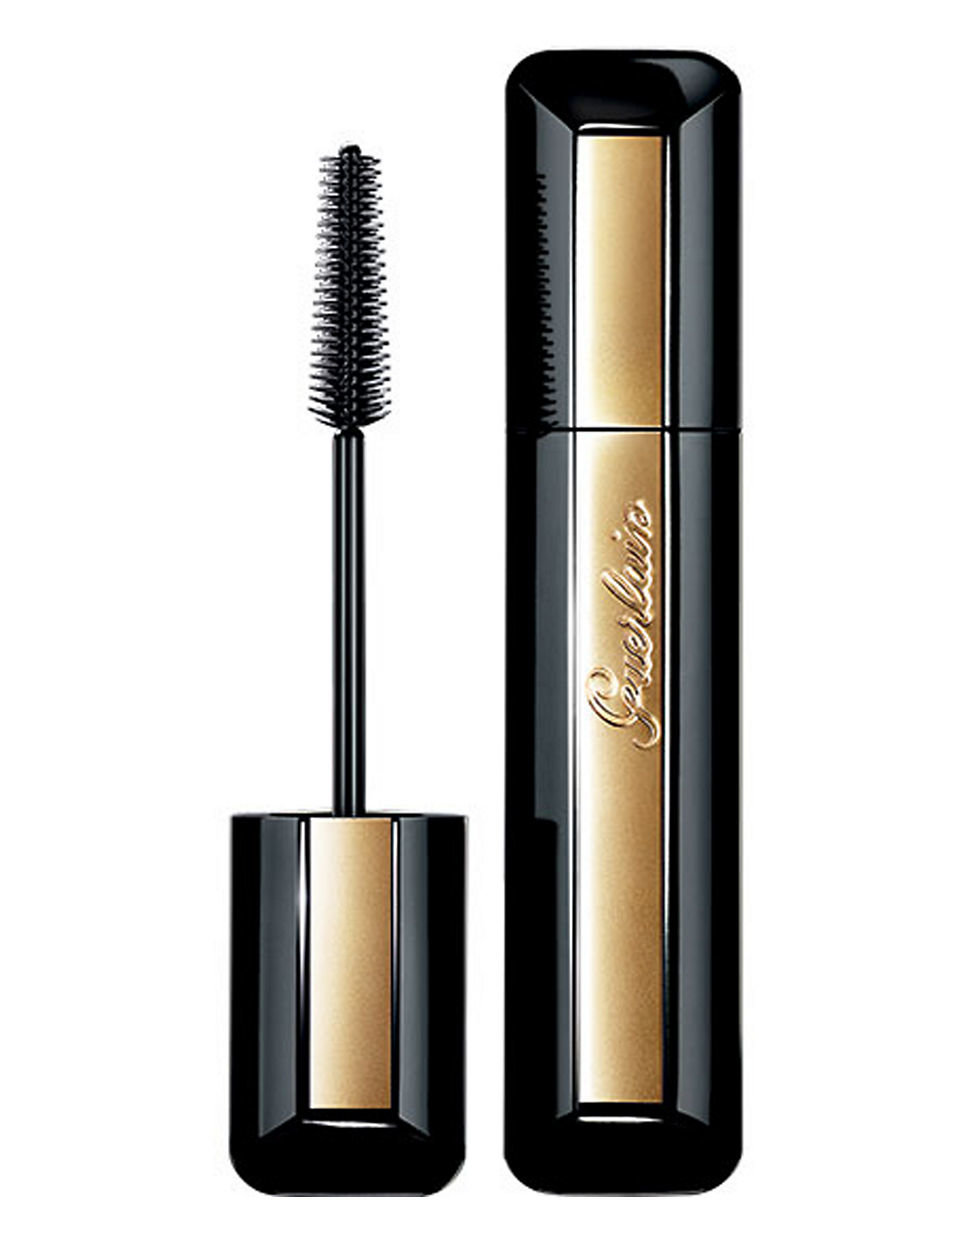 Blakstienų tušas Guerlain Maxi Lash So Volume 8.5 ml